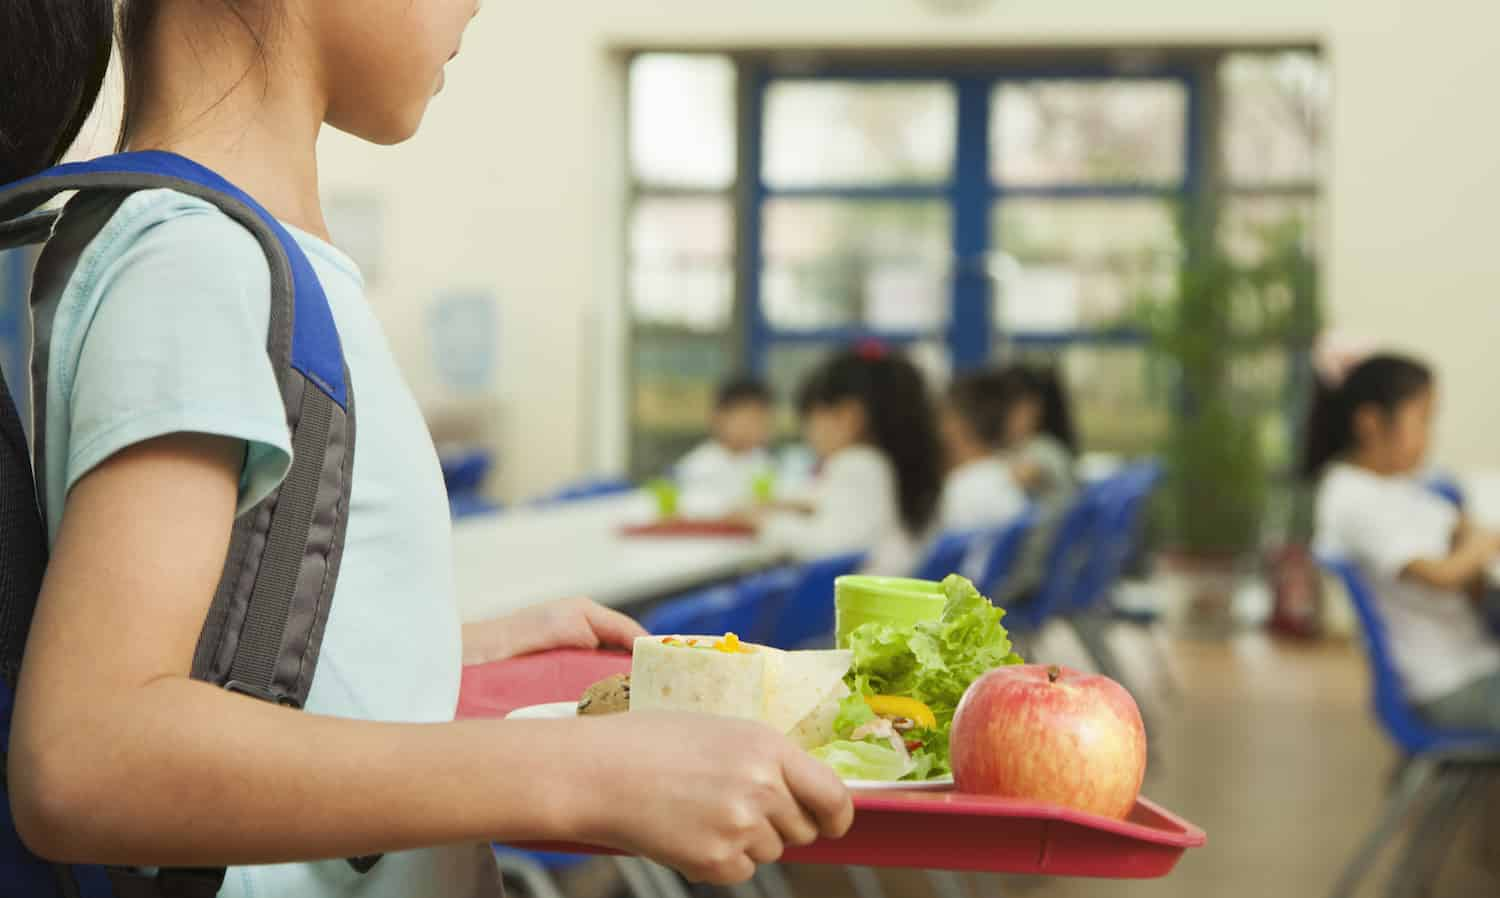 Impact of a Sociable School Meal